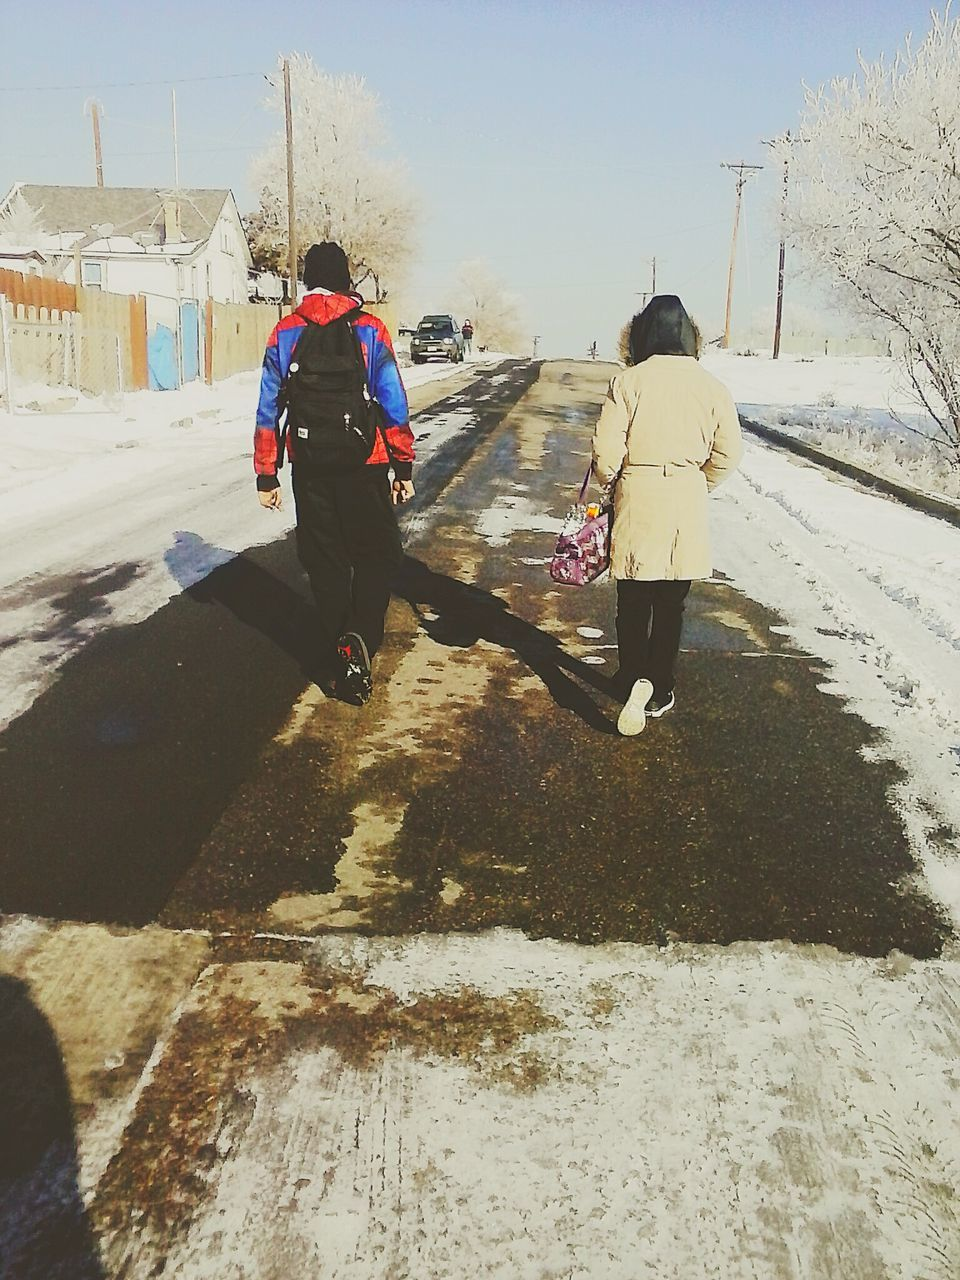 rear view, real people, winter, full length, walking, snow, cold temperature, leisure activity, women, day, lifestyles, two people, sunlight, outdoors, men, shadow, warm clothing, architecture, building exterior, nature, sky, people